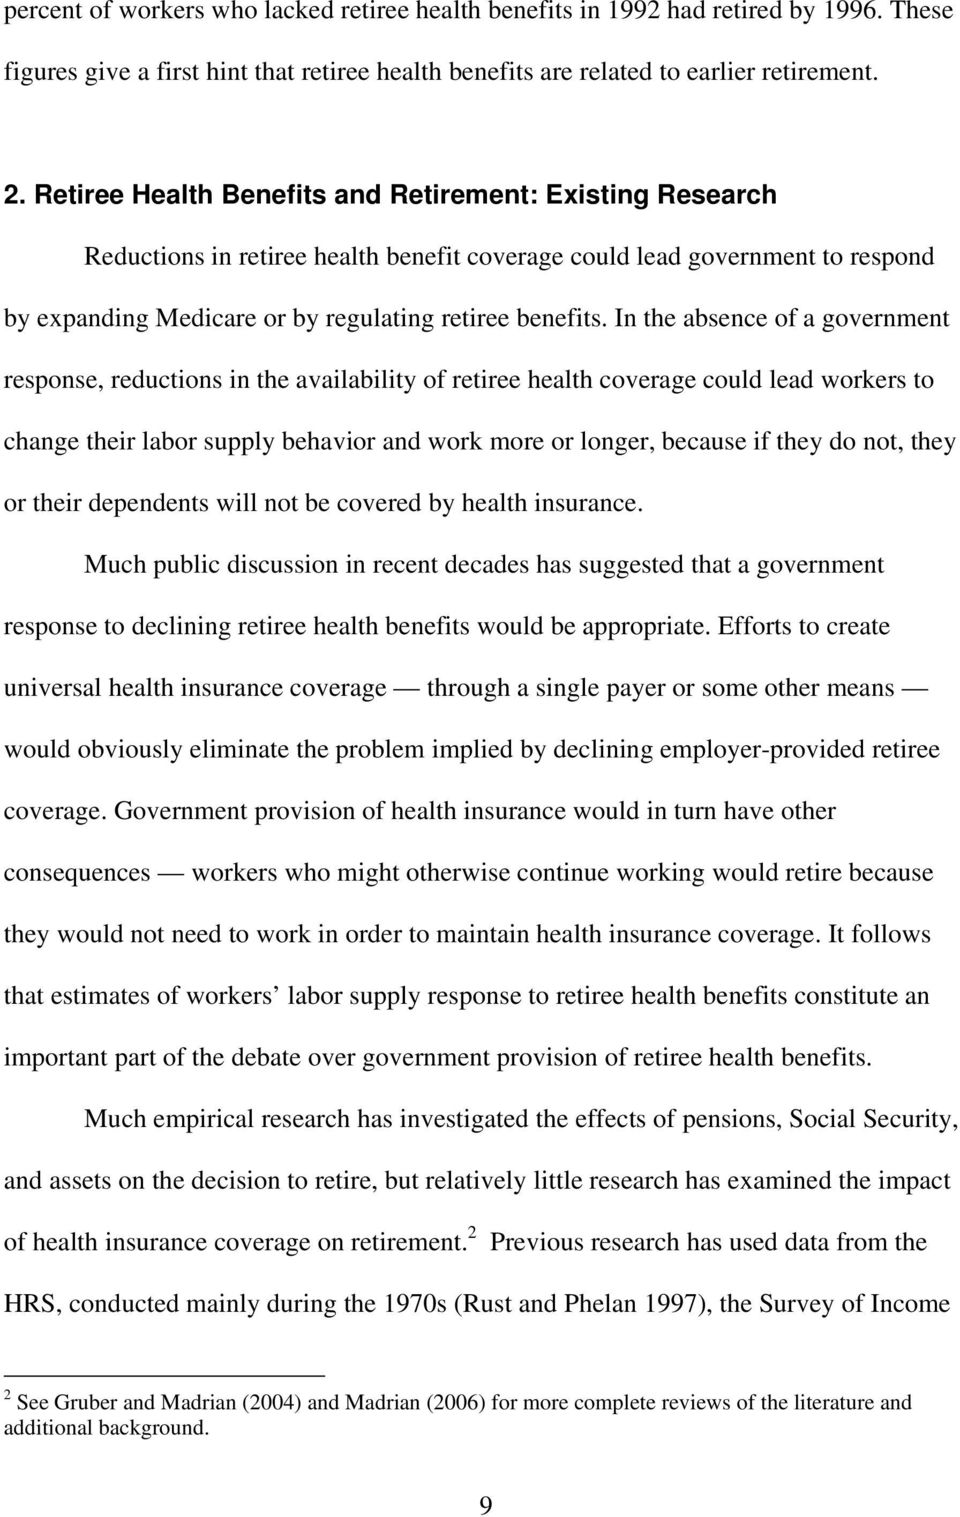 In the absence of a government response, reductions in the availability of retiree health coverage could lead workers to change their labor supply behavior and work more or longer, because if they do